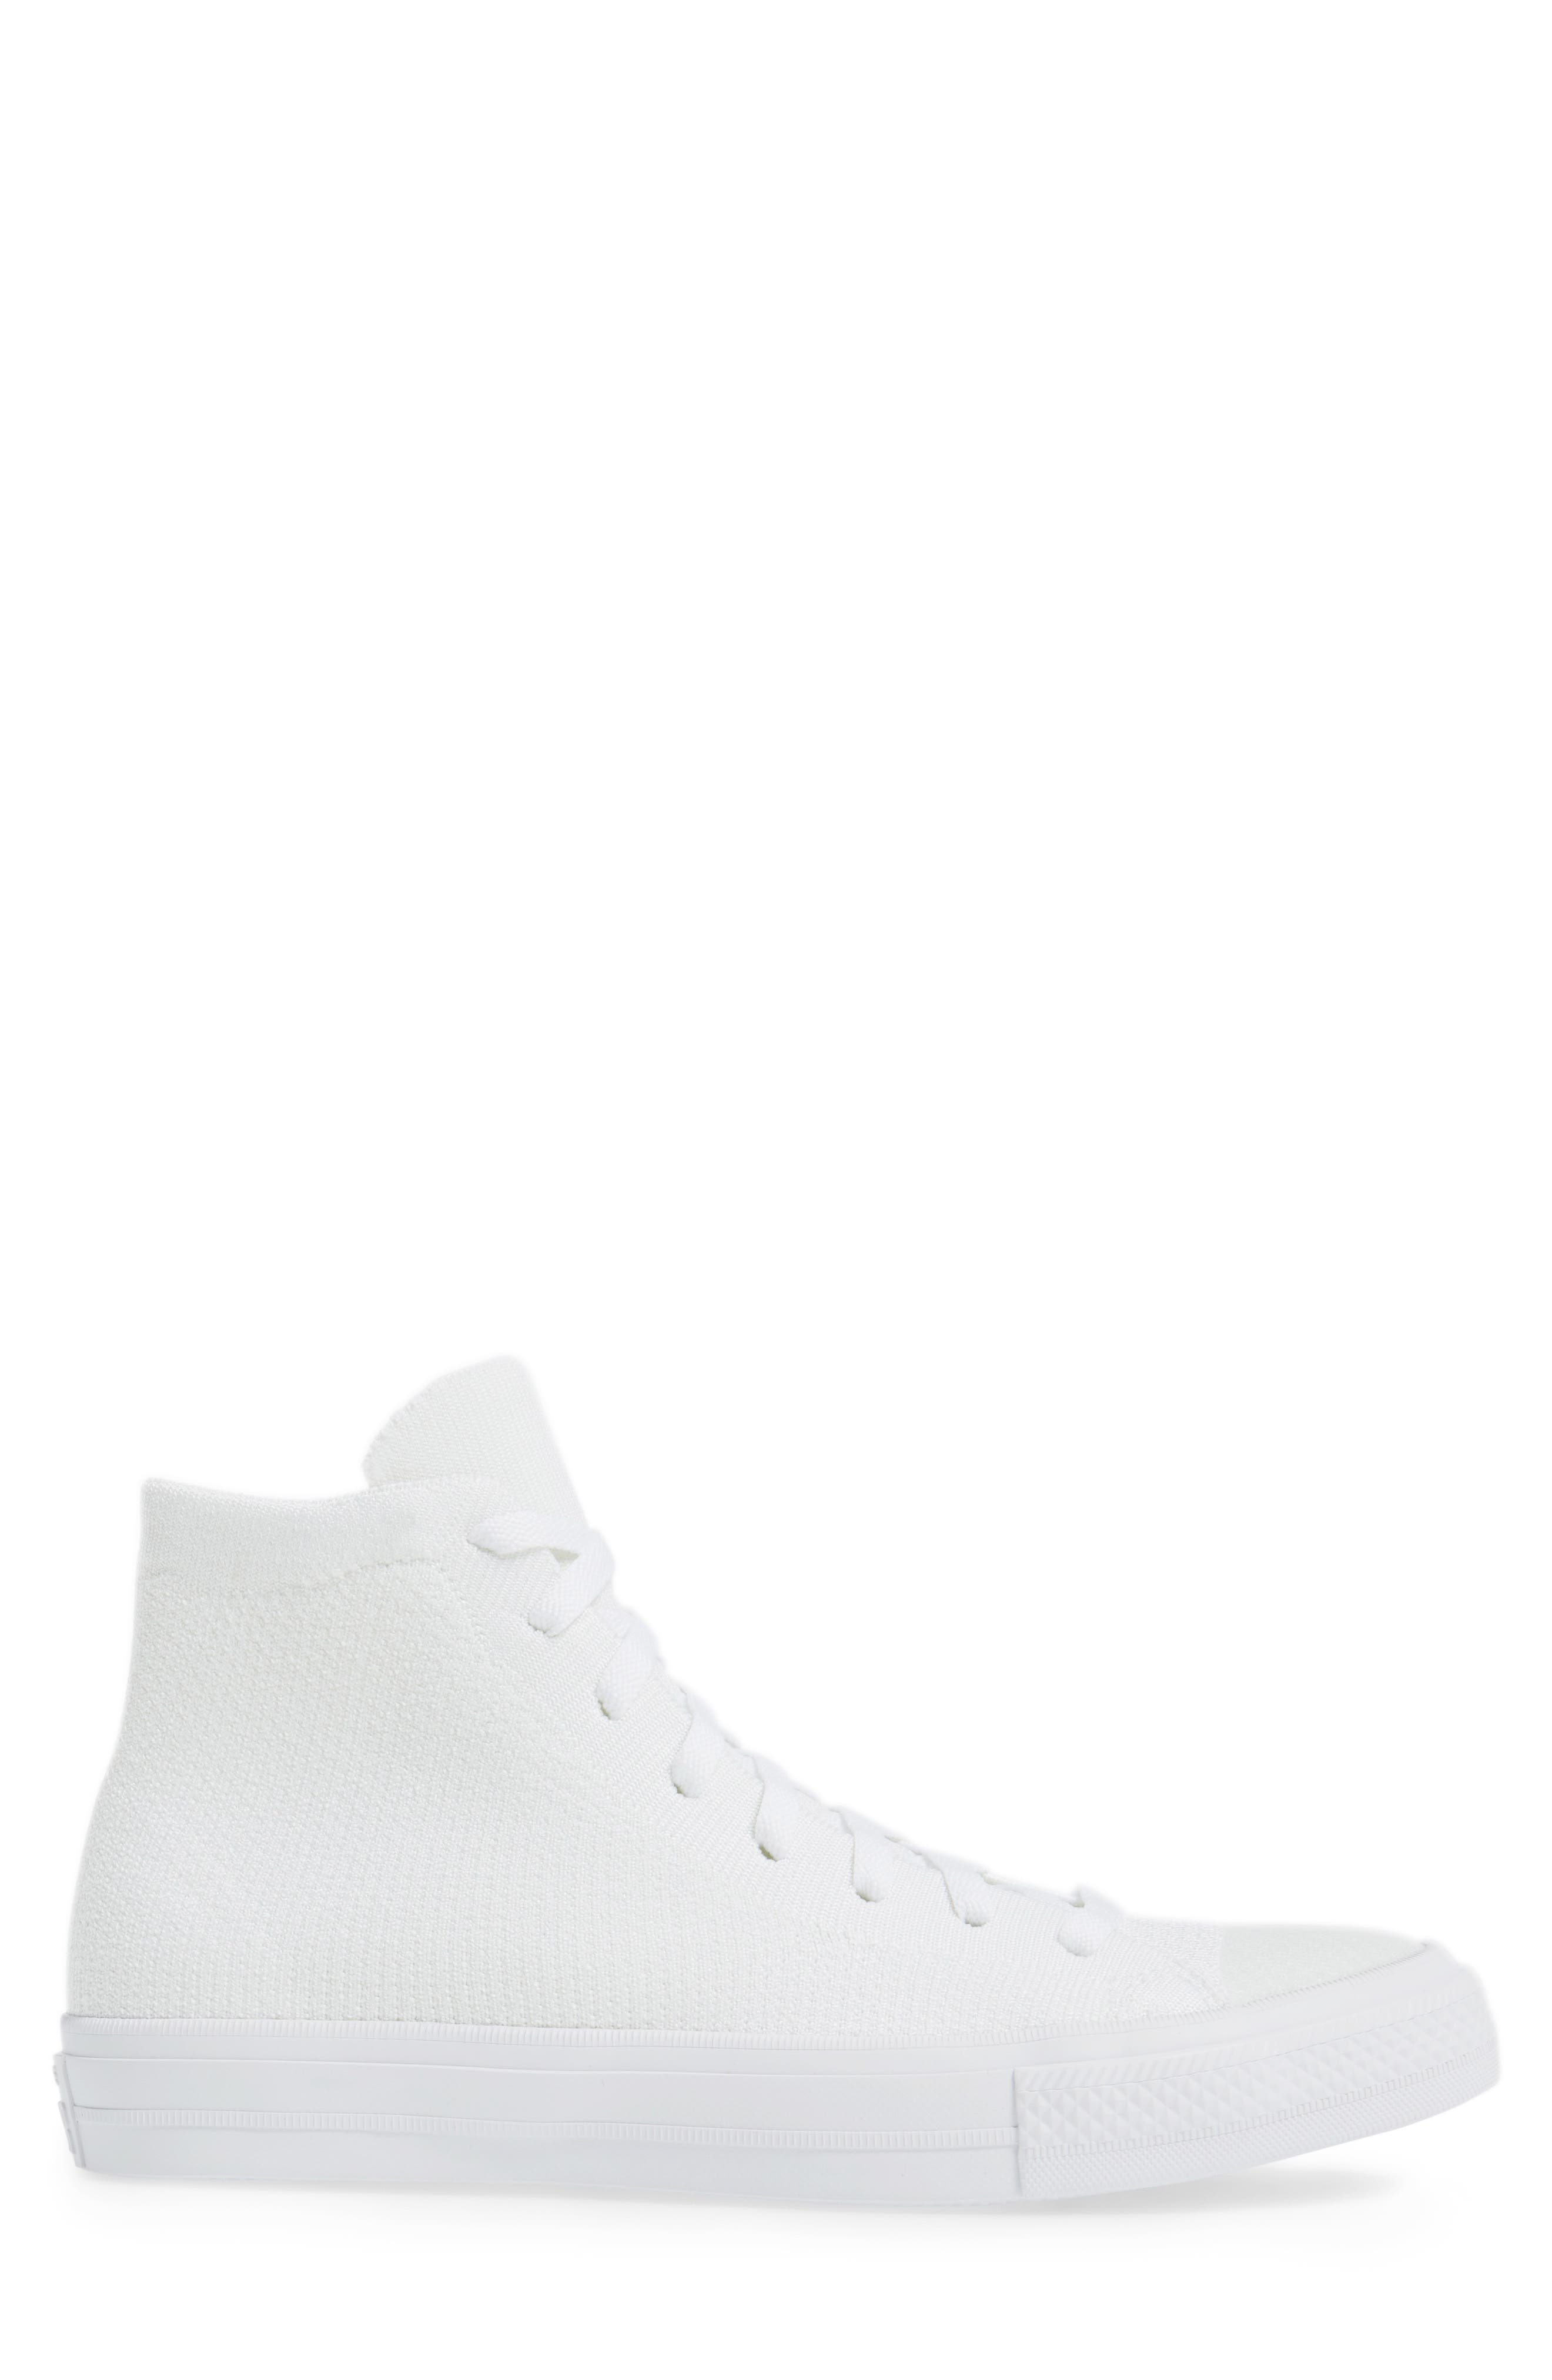 Chuck Taylor<sup>®</sup> All Star<sup>®</sup> Flyknit Hi Sneaker,                             Alternate thumbnail 16, color,